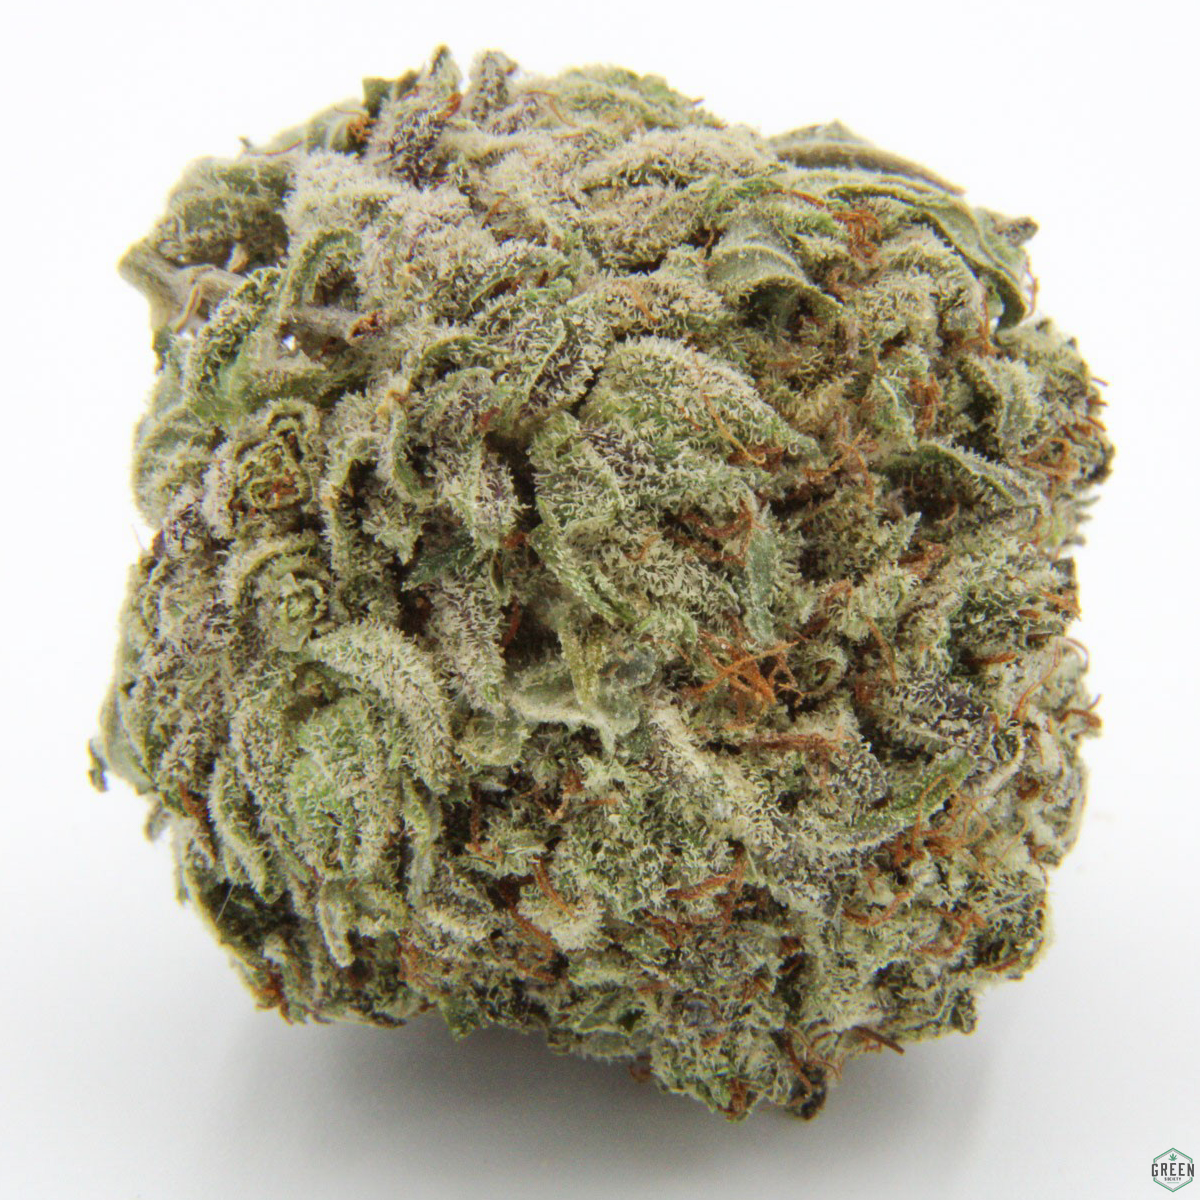 Ice Wreck Kush by Green Society - Image © 2018 Green Society. All Rights Reserved.